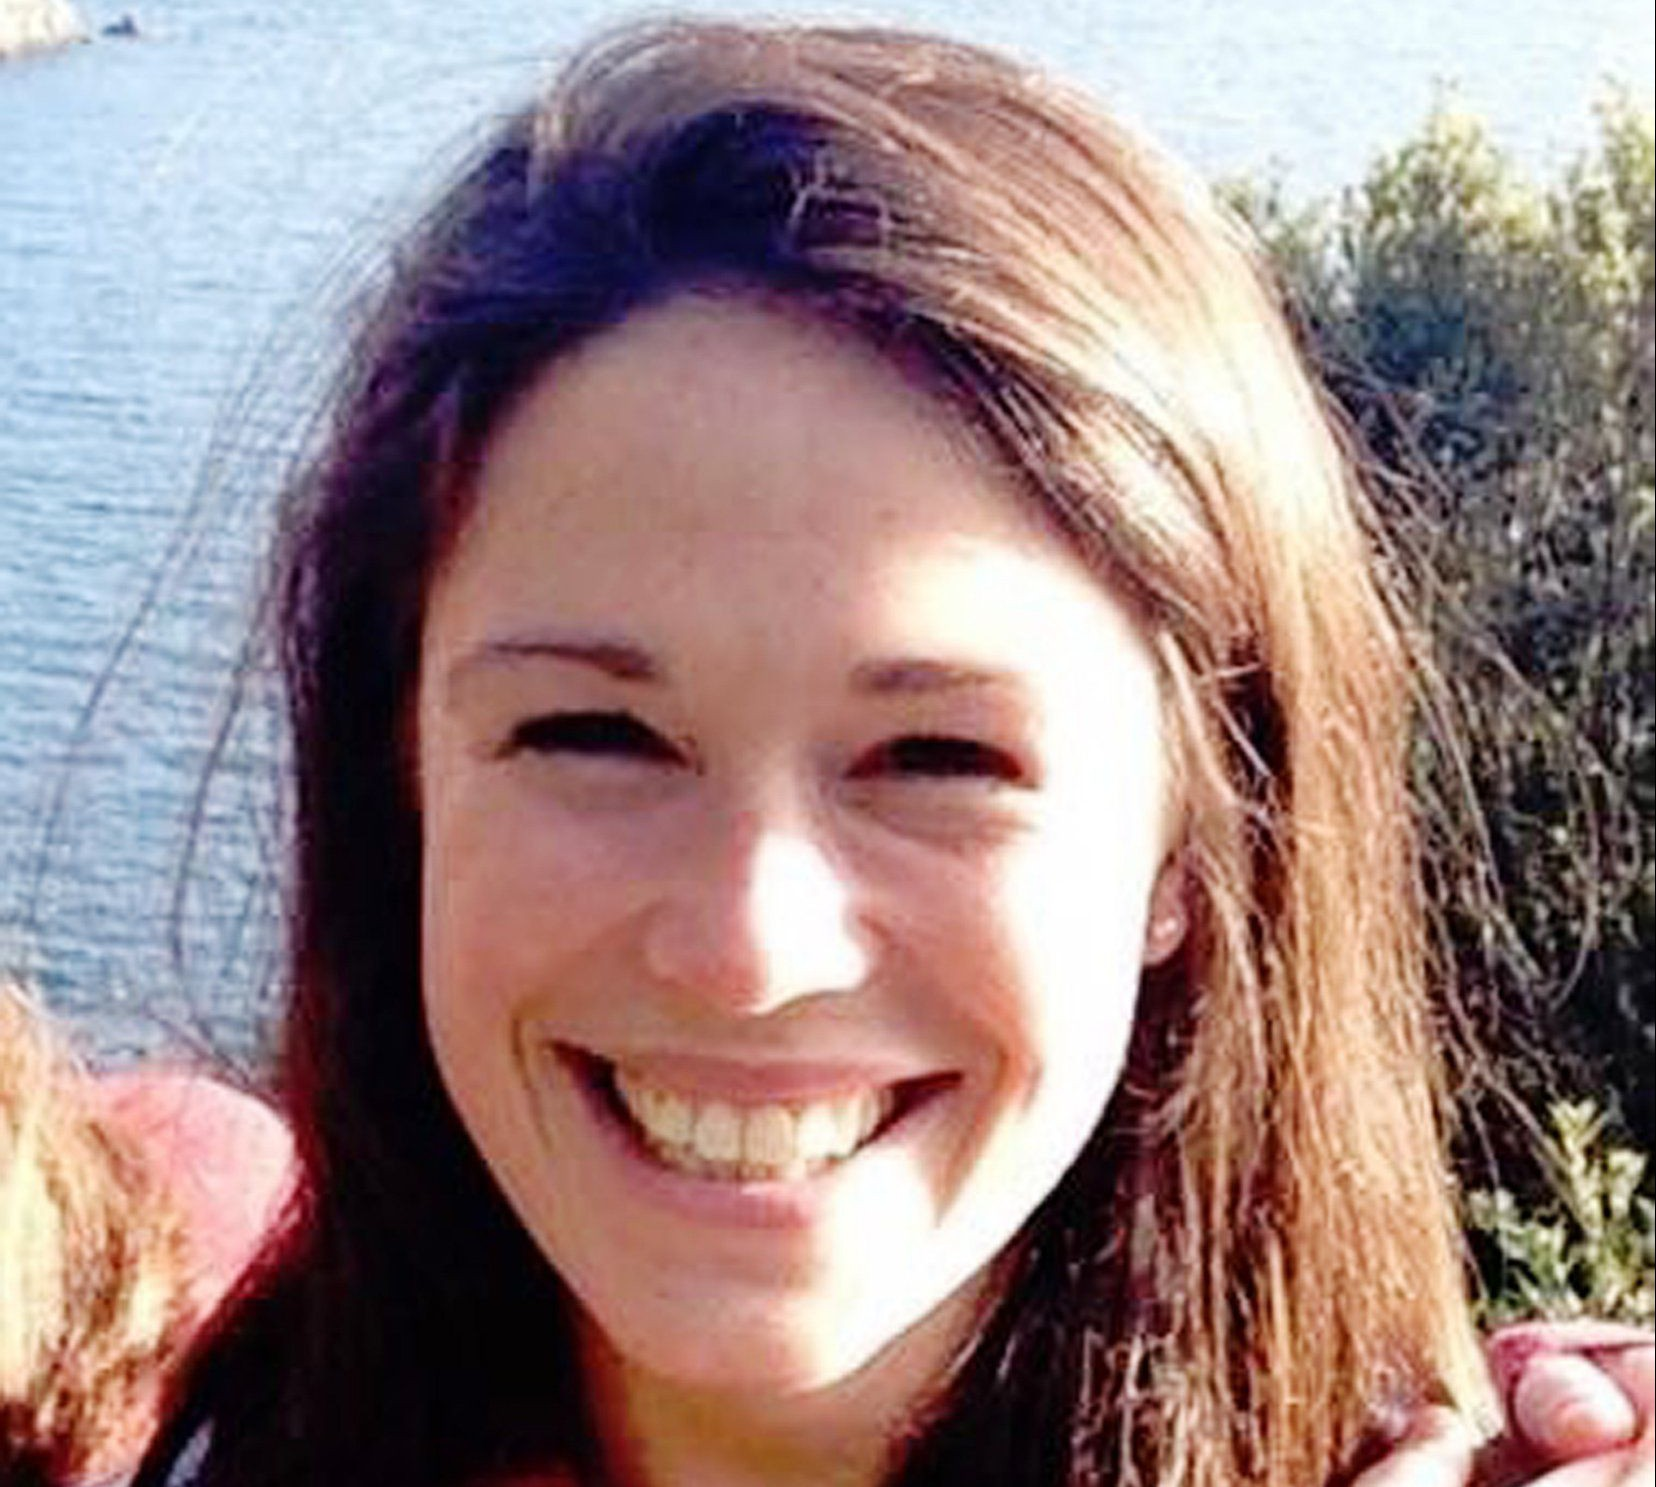 Body confirmed as missing junior doctor Rose Polge